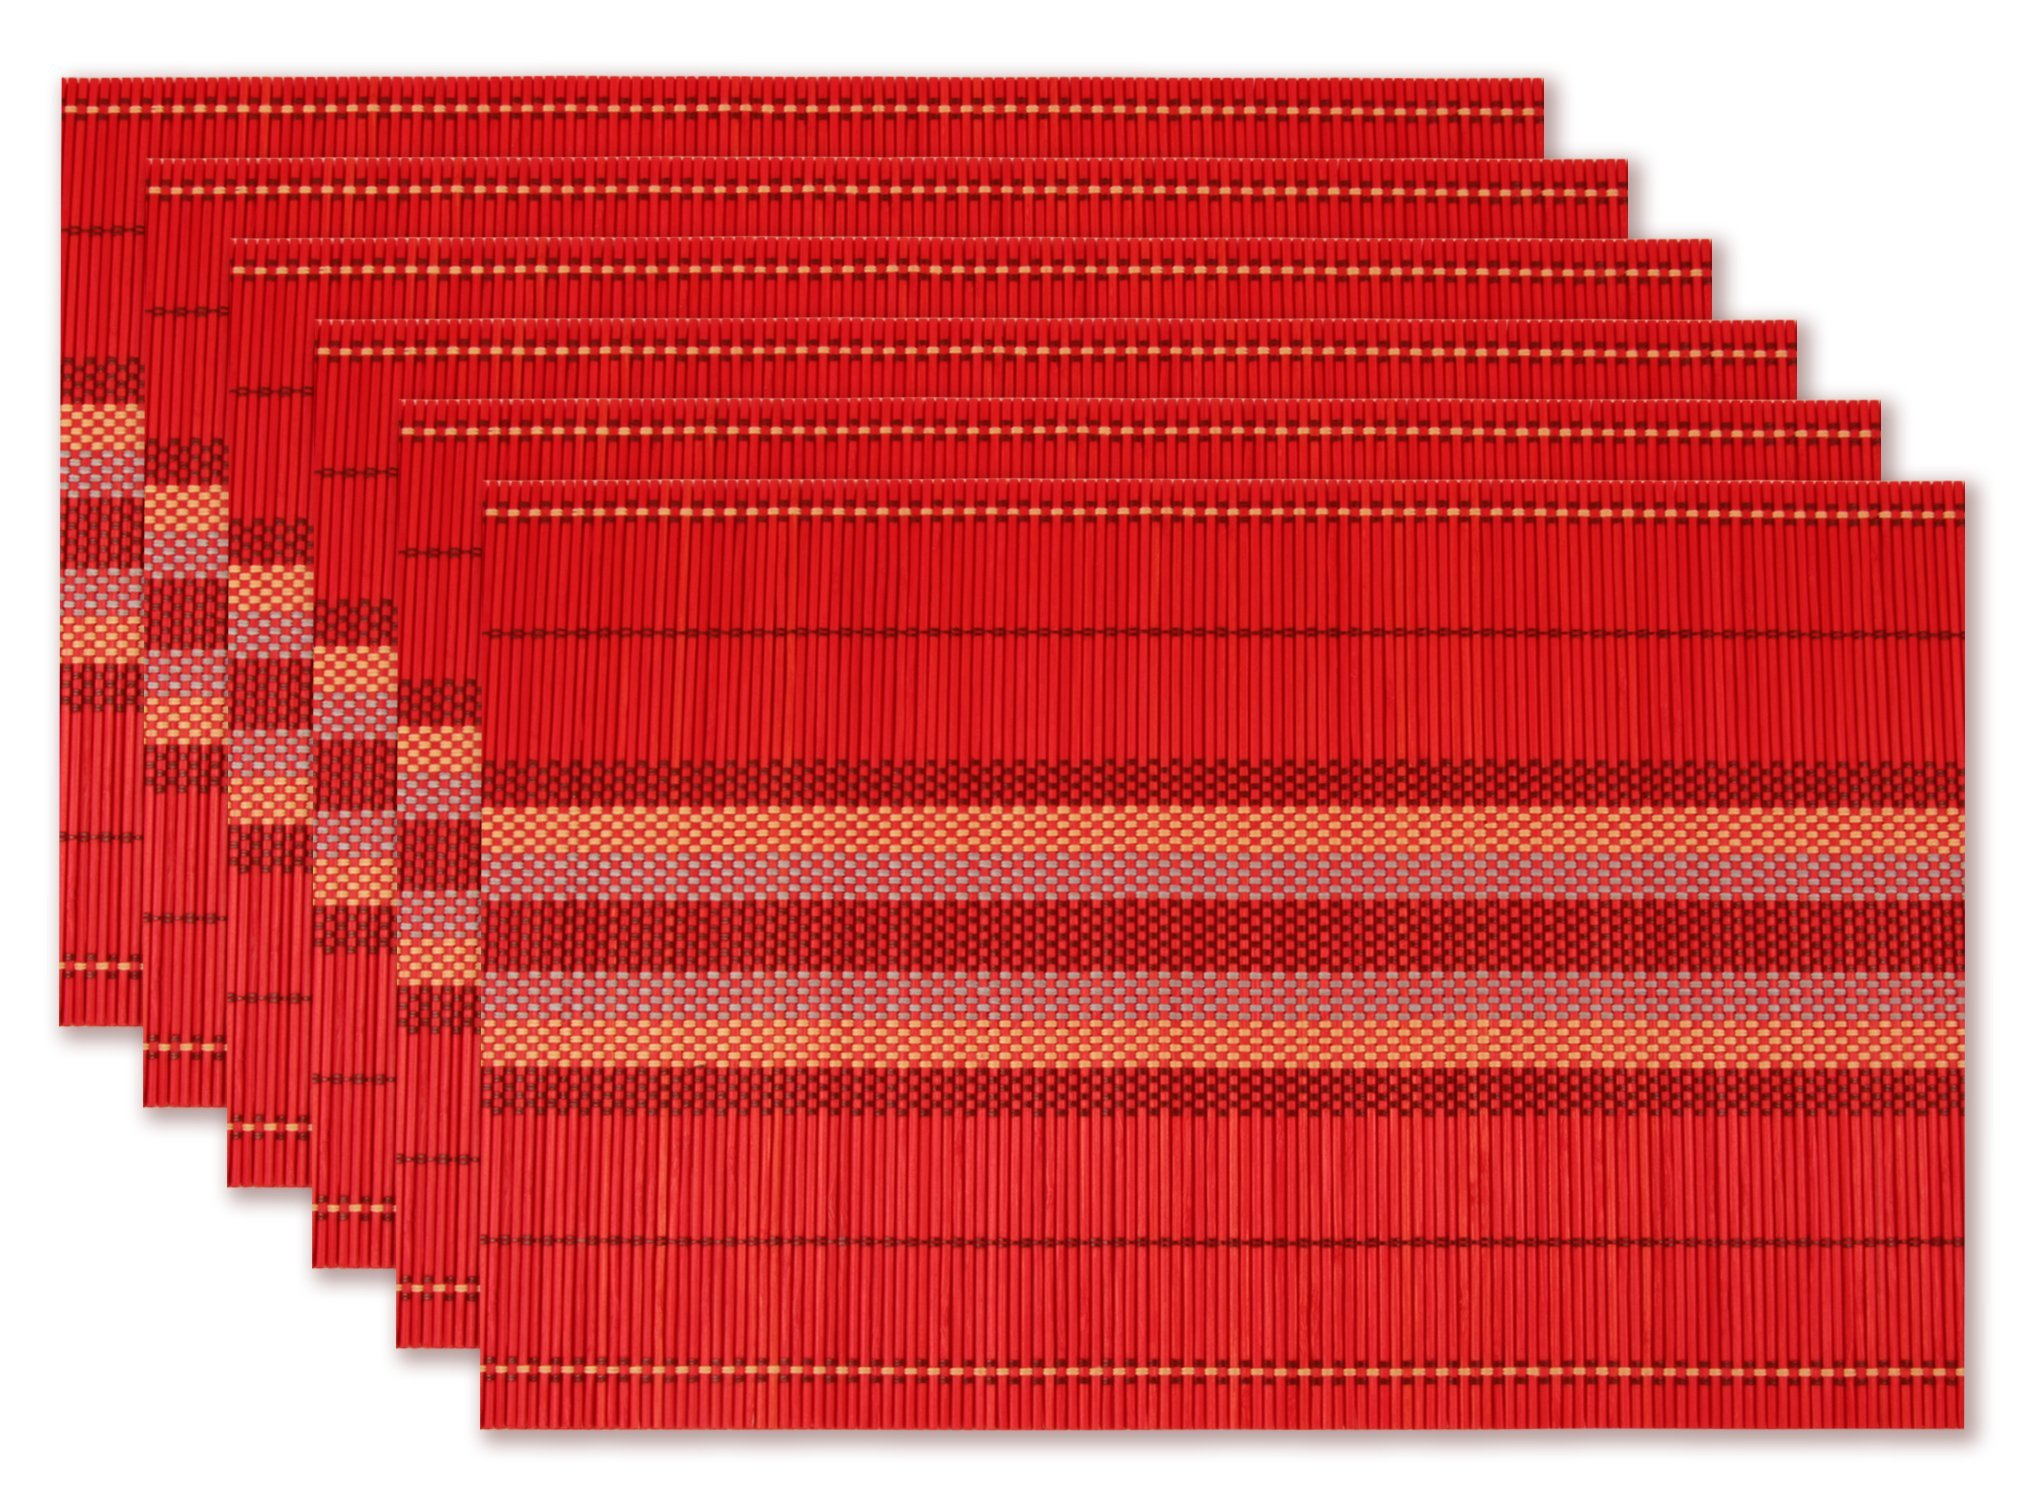 Homcomoda Bamboo Placemats Dining Table Set of 6 Handmade Natural Heat Insulation Place Mats Dinner Table Easy to Clean (Red)